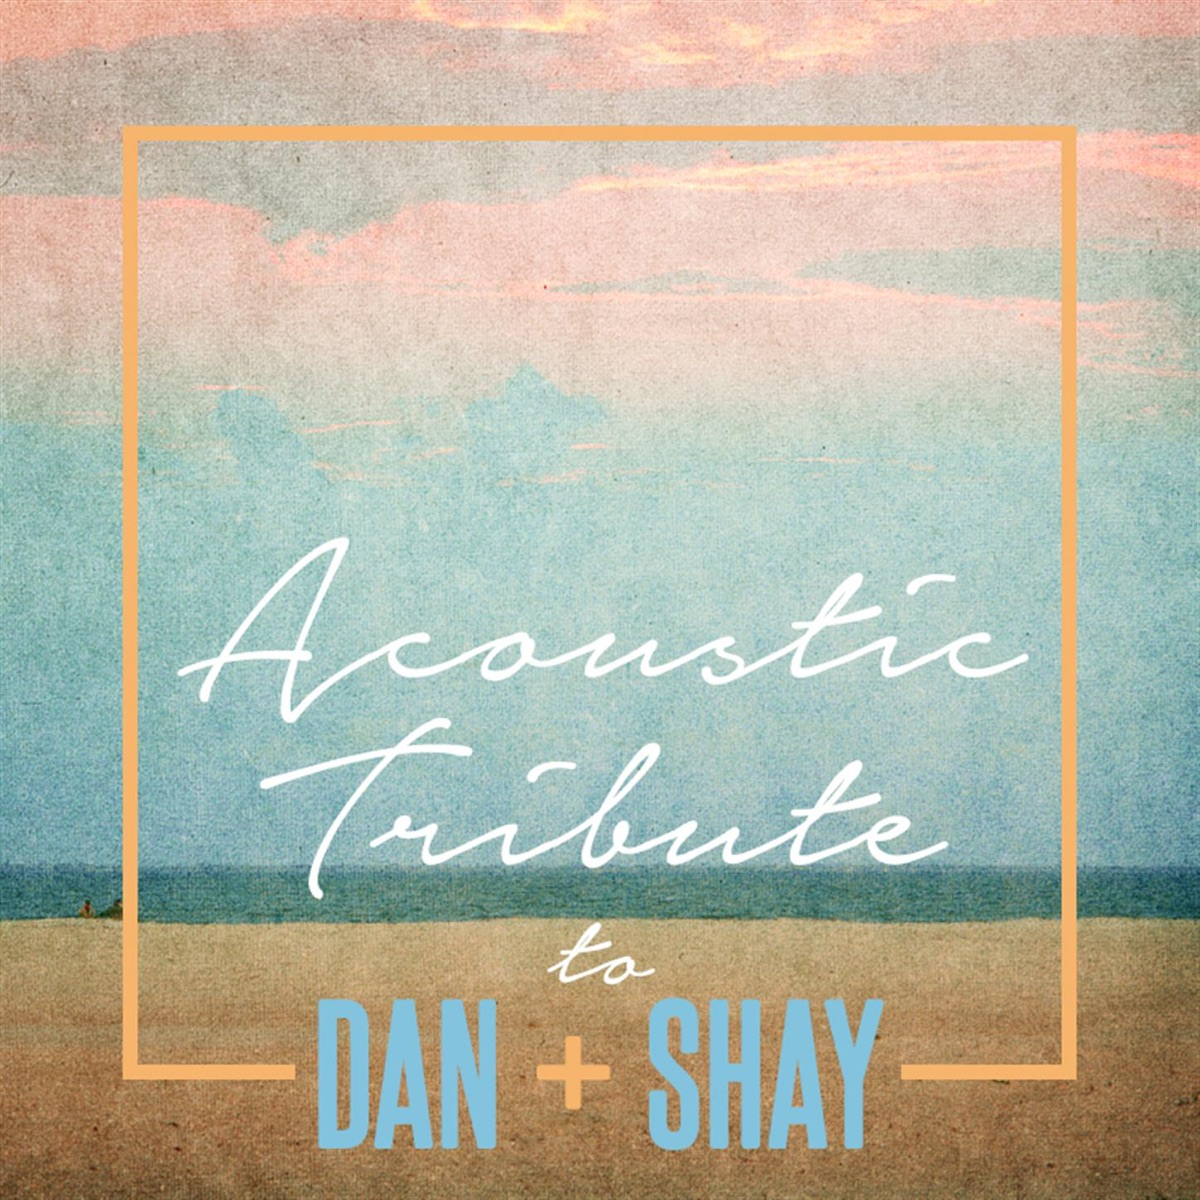 Acoustic Tribute to Dan + Shay Album Cover by Guitar Tribute